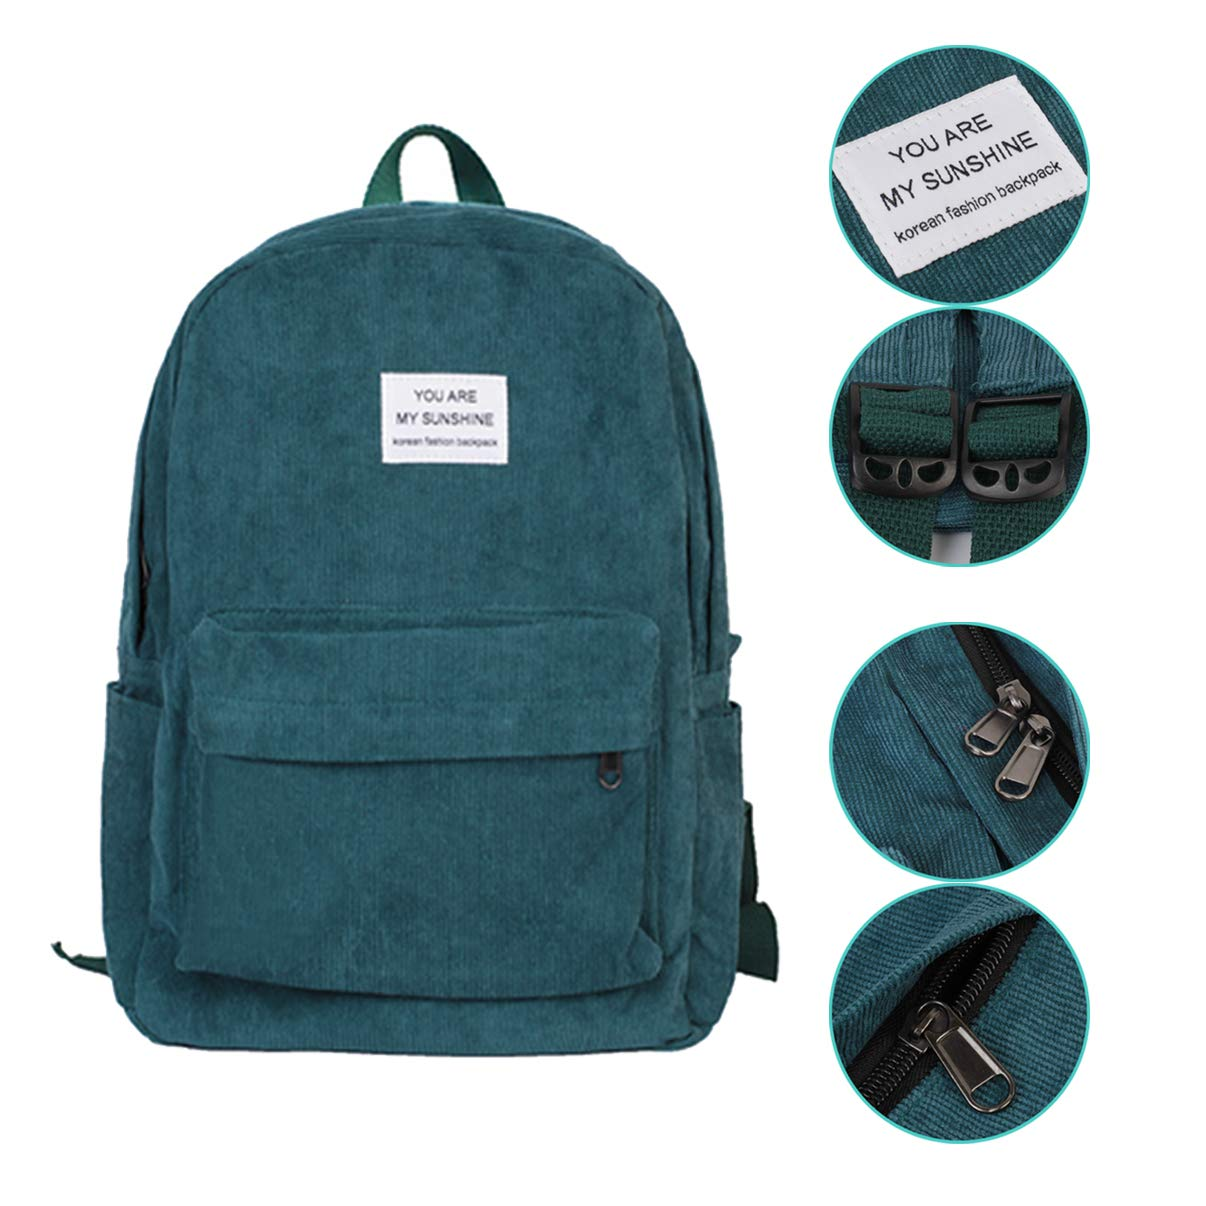 Laptop Backpack with Double-Zipper Closure /& Bottle Side Pockets for College//Travel//School School Backpack for Girls